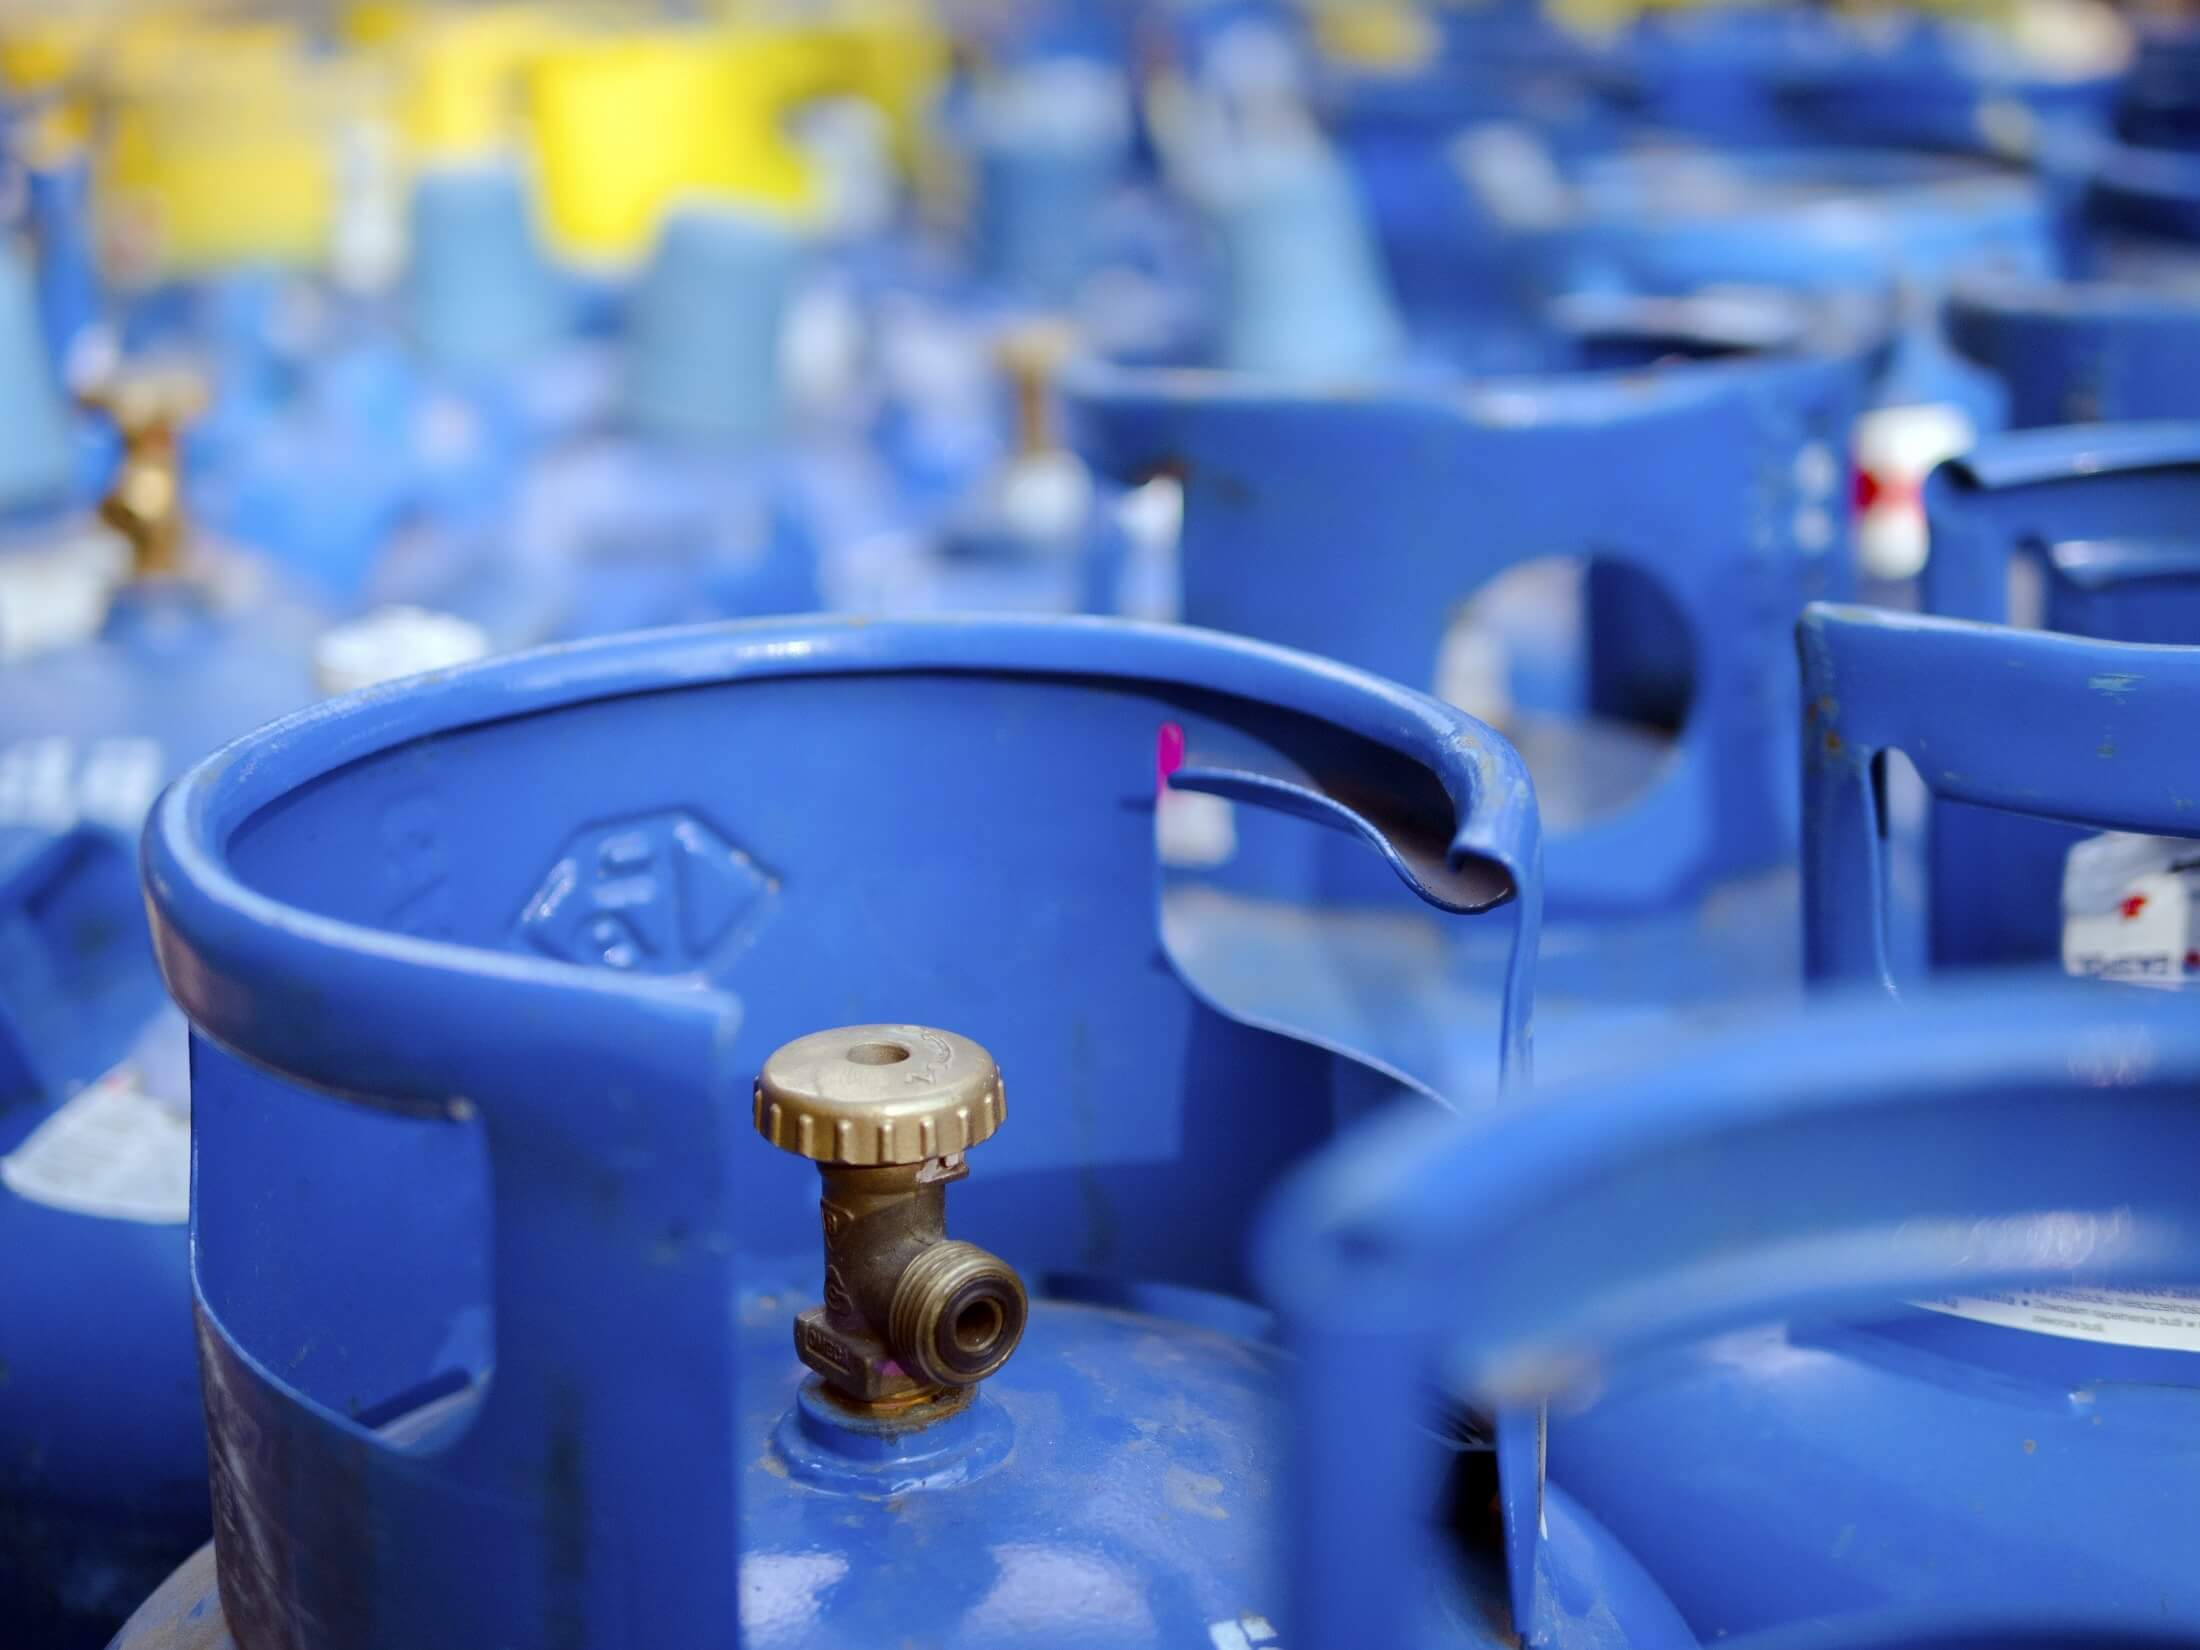 Gas bottle safety in the workplace